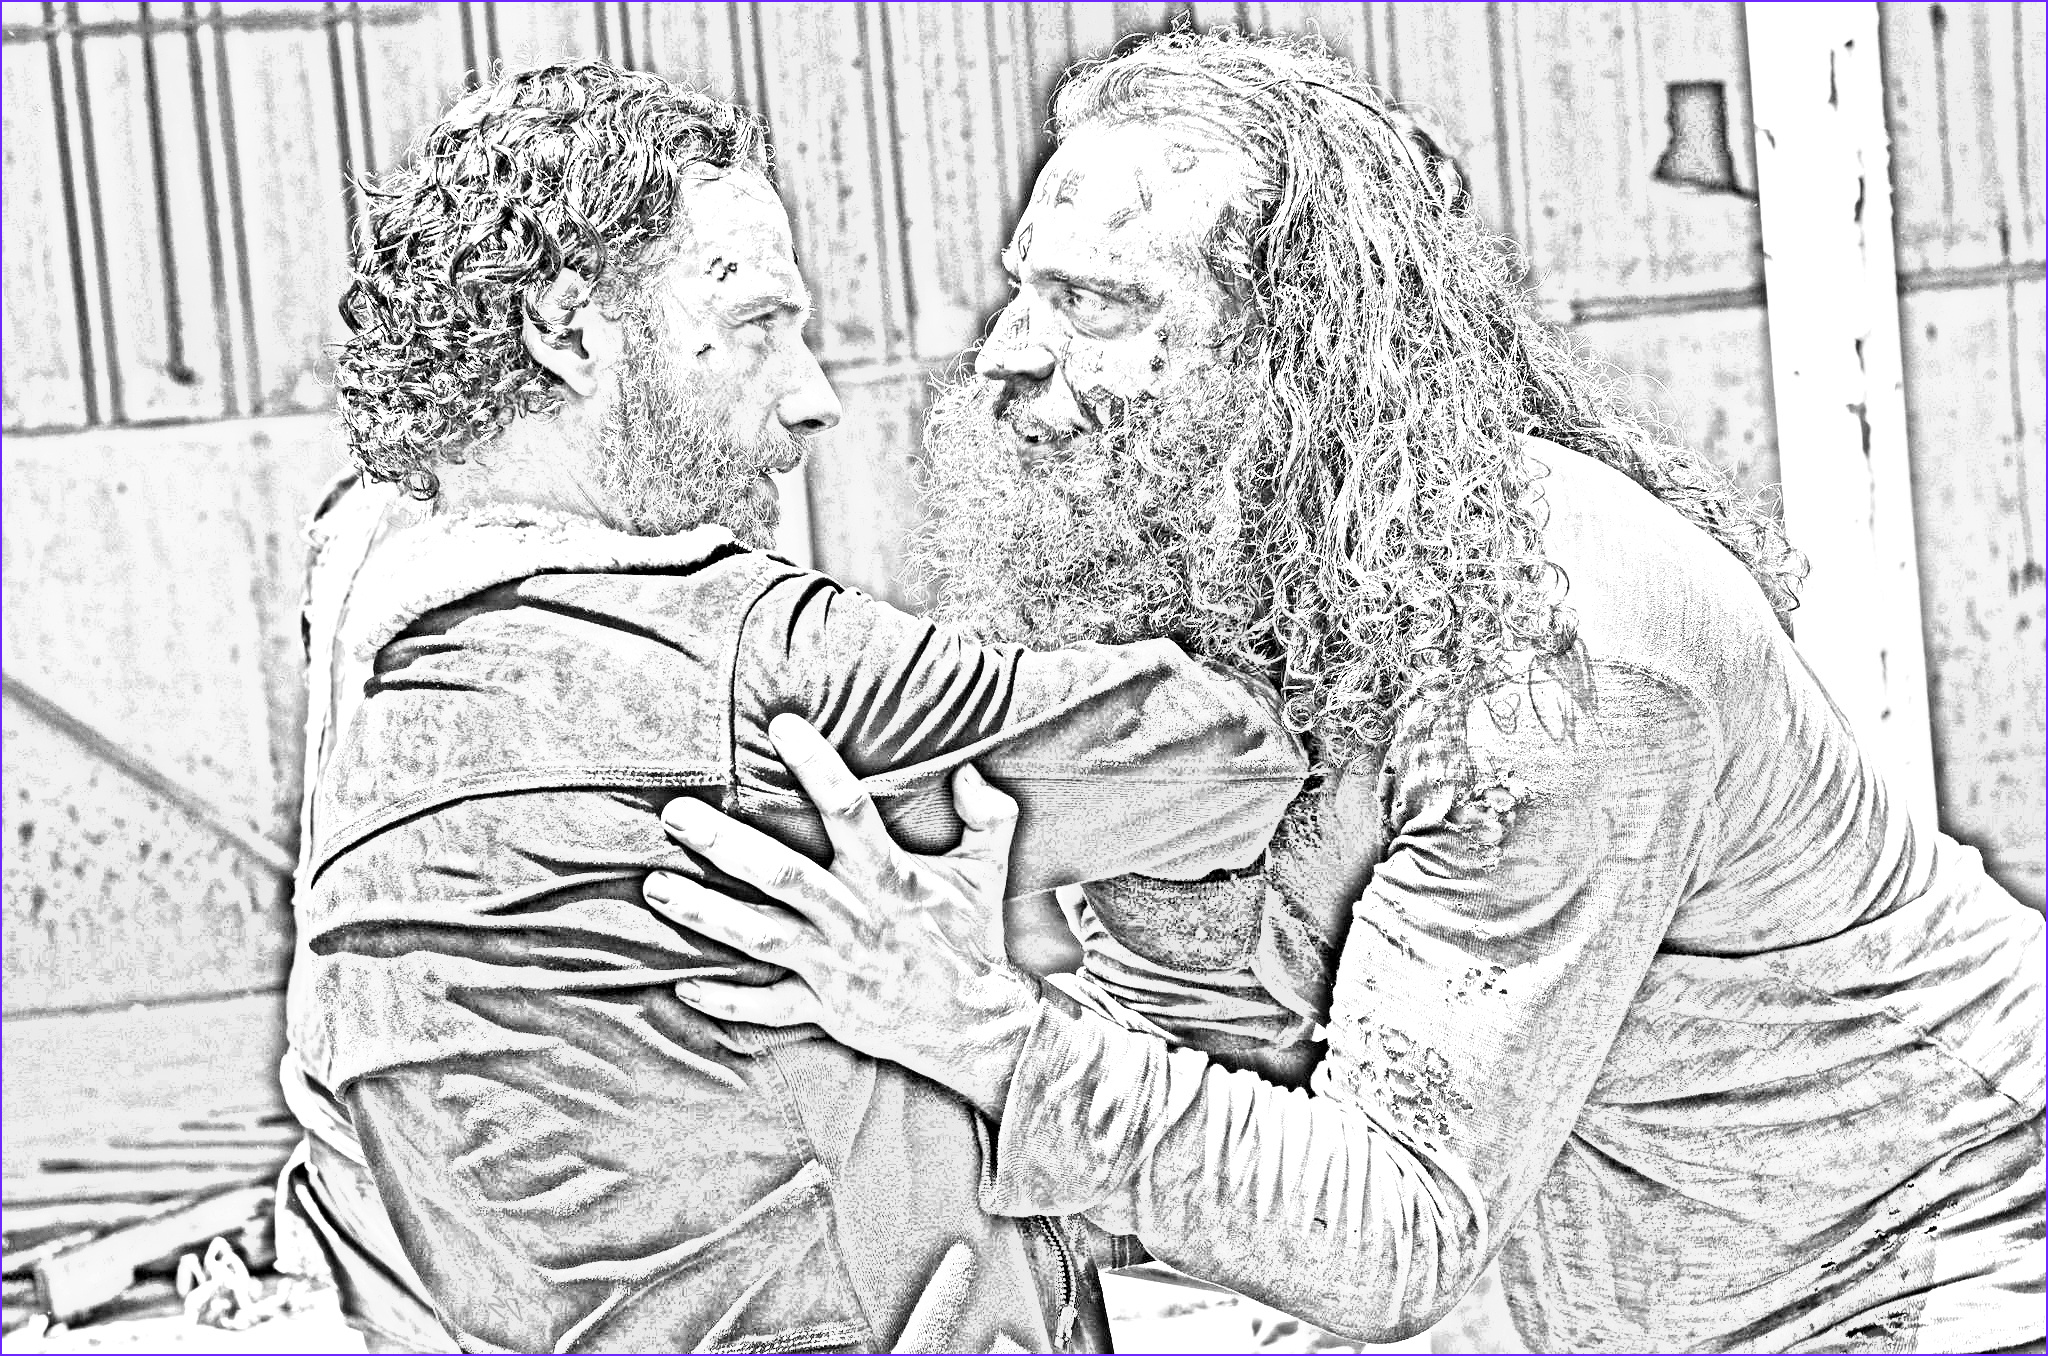 Walking Dead Coloring Pages Beautiful Photos the Walking Dead Coloring Pages Rick the Walking